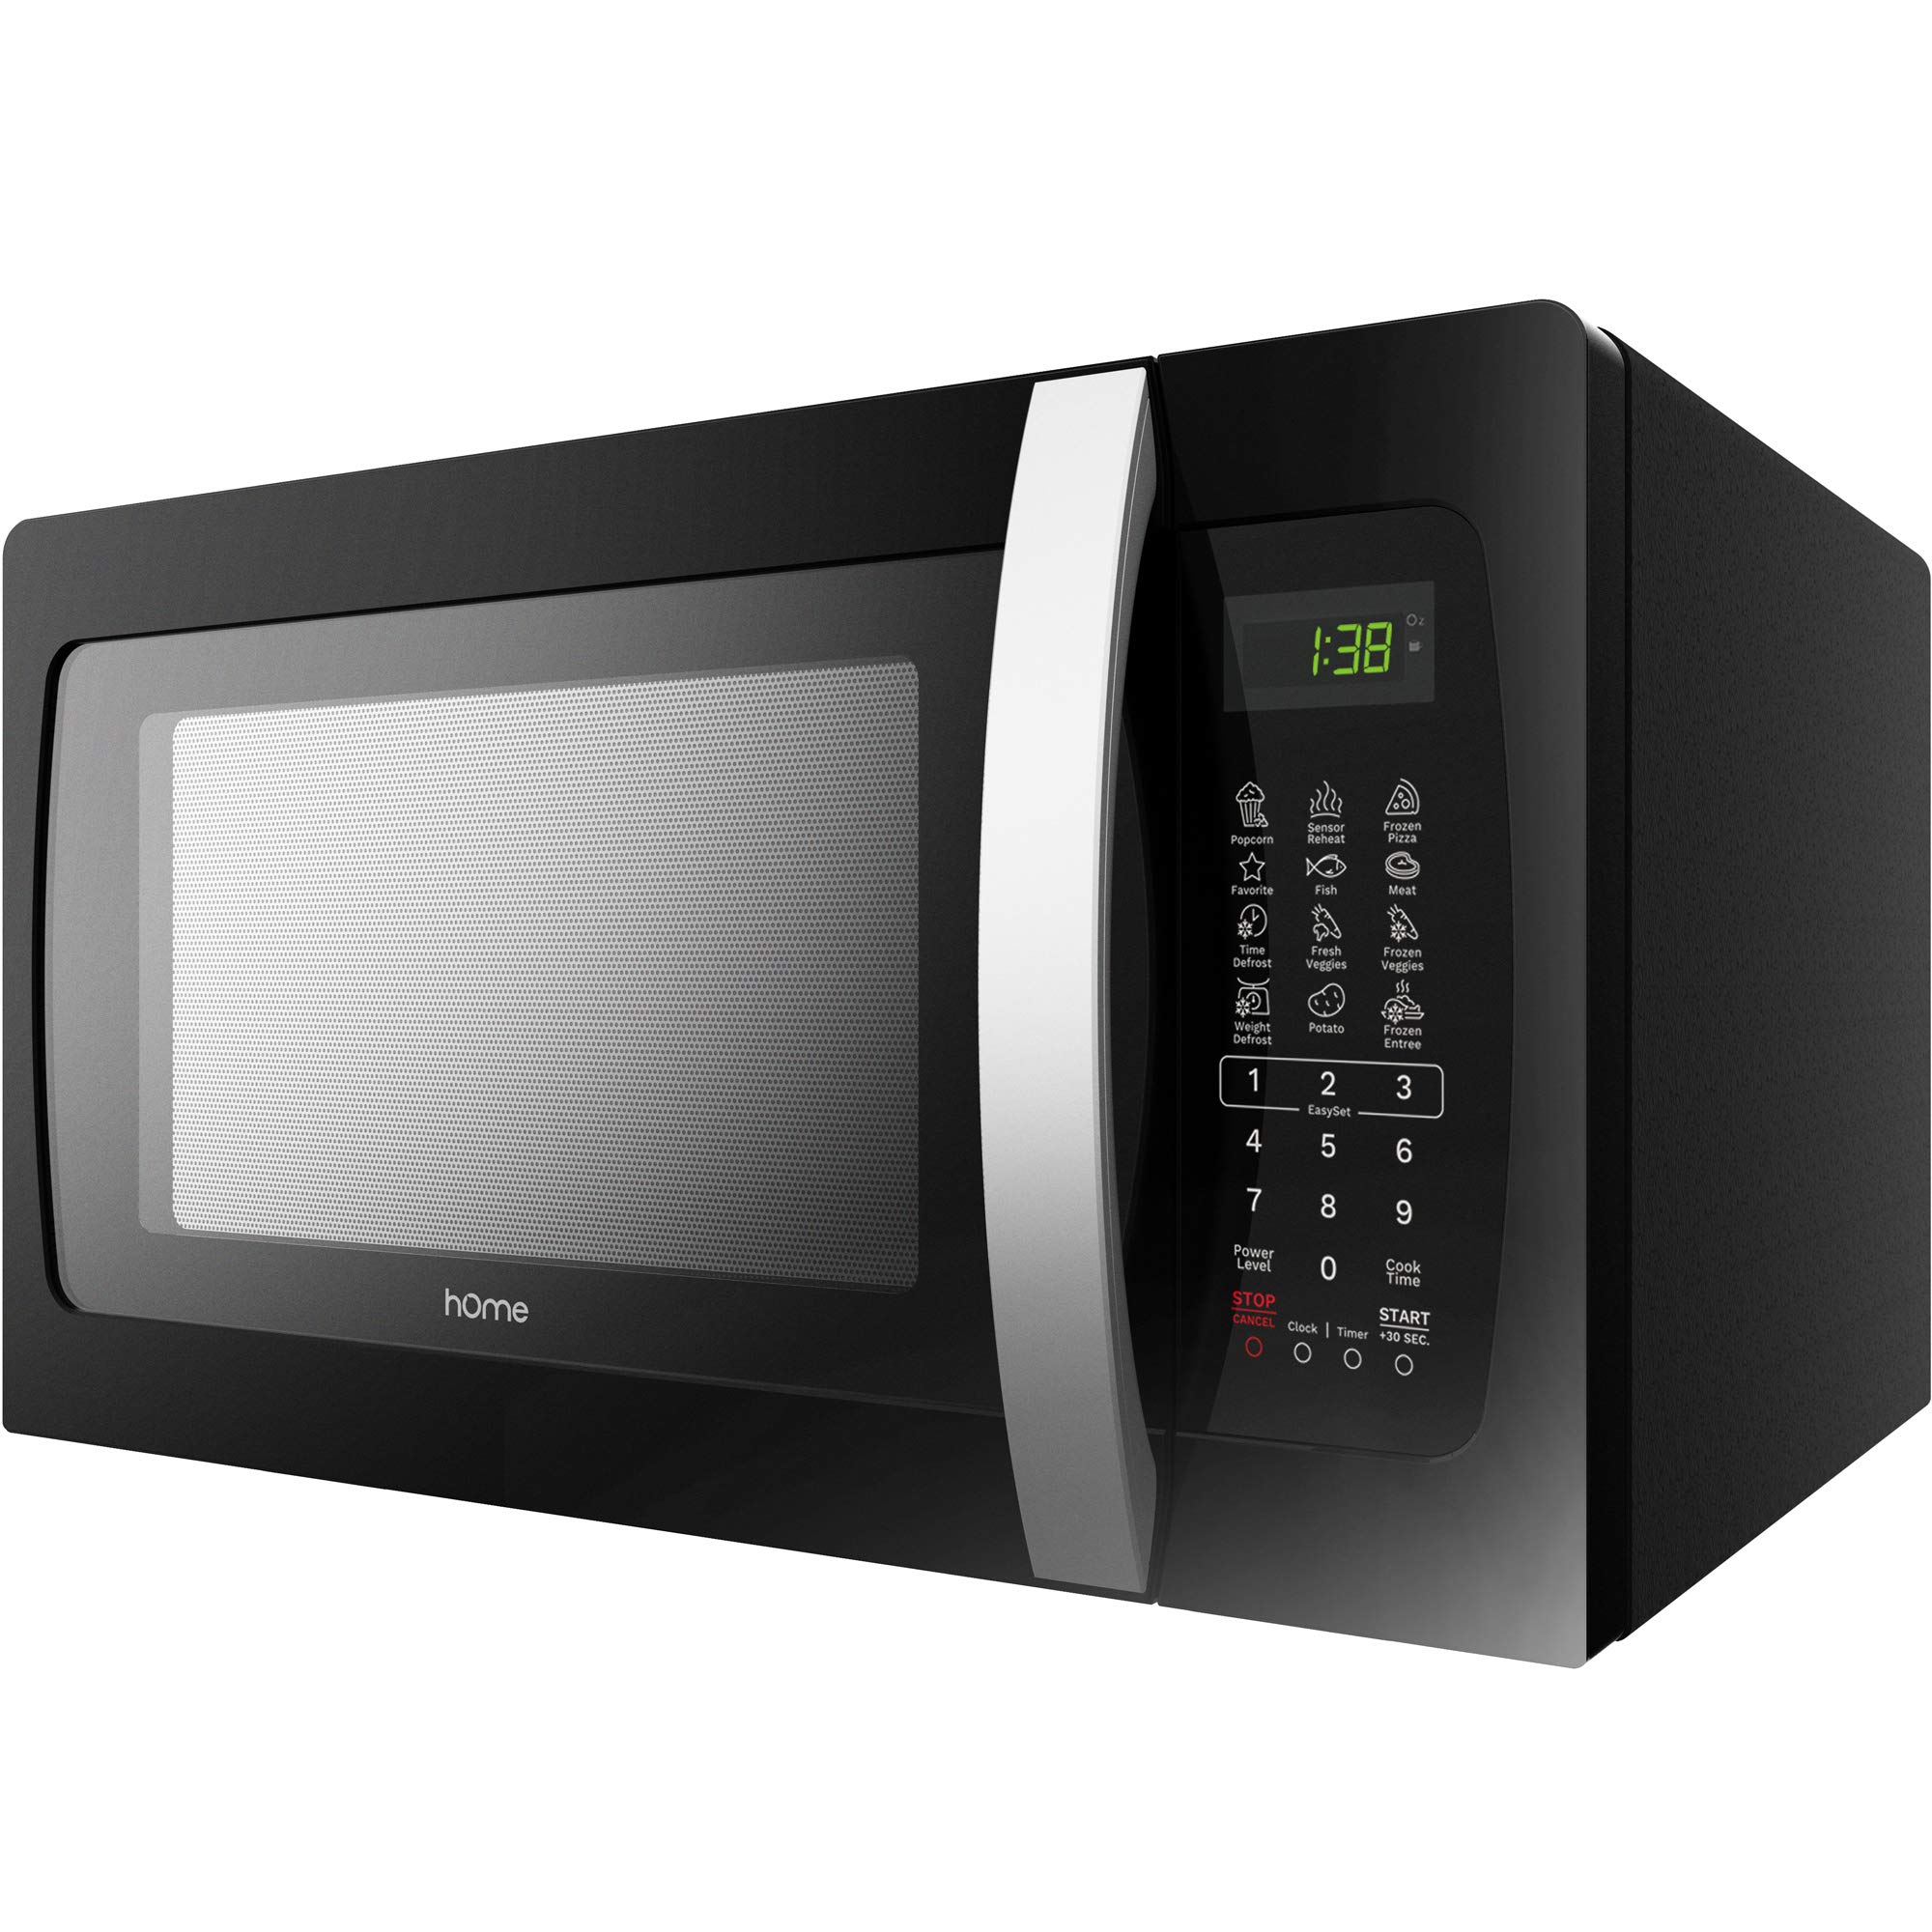 hOmeLabs 1050 Watt Countertop Microwave Oven - 1.3 cu ft Microwaves Cooker with Glass Cooking Tray Food Plate Accessory - Popcorn Pizza Maker Microwave Ovens for Counter- Black Stainless Steel Finish